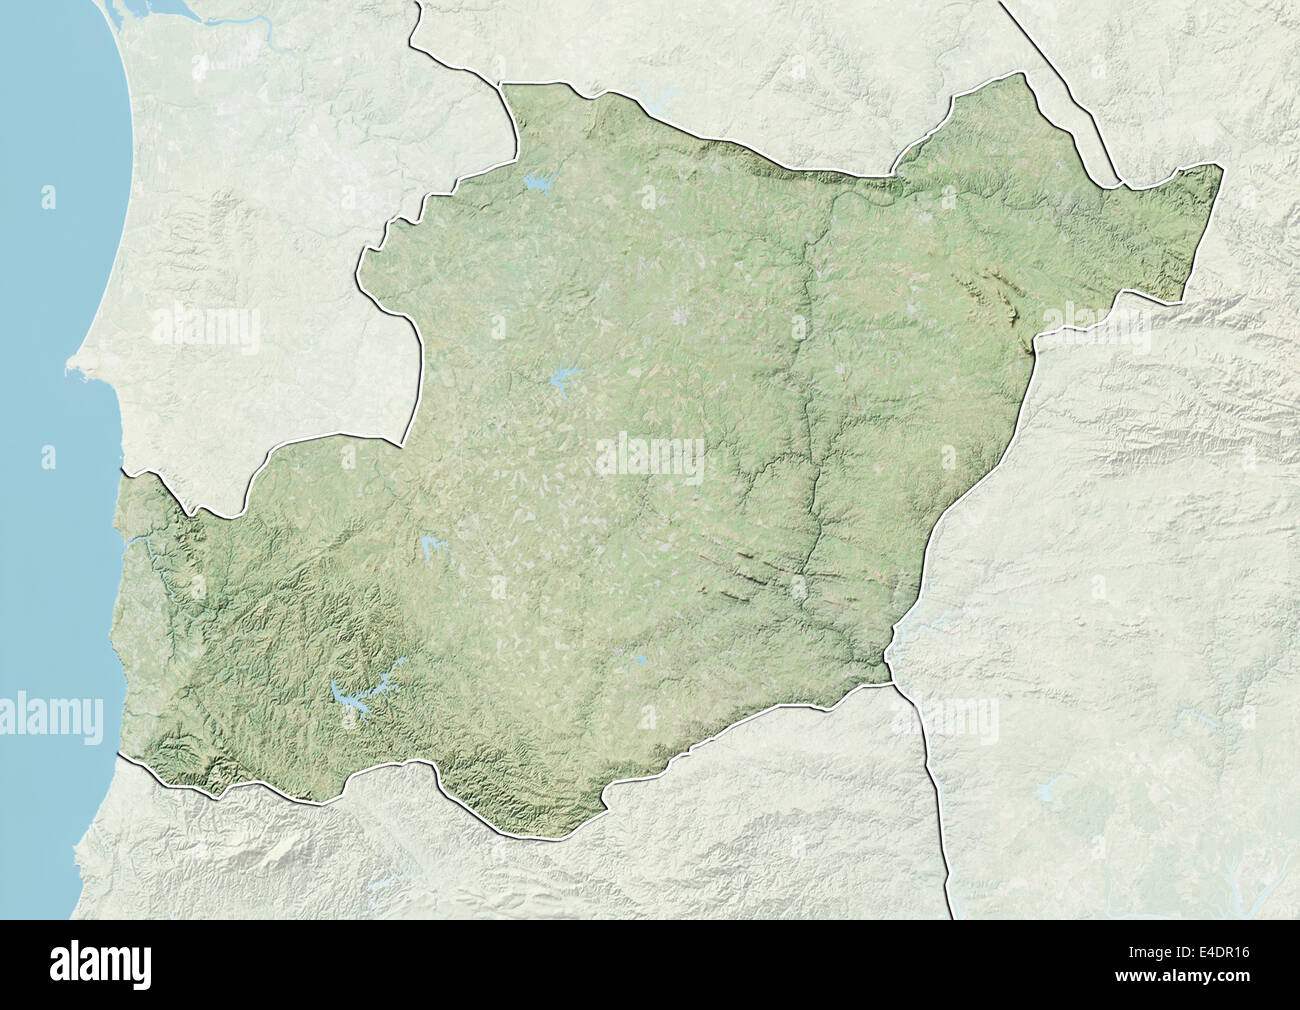 District Of Beja Portugal Relief Map Stock Photo Royalty Free - Portugal beja map